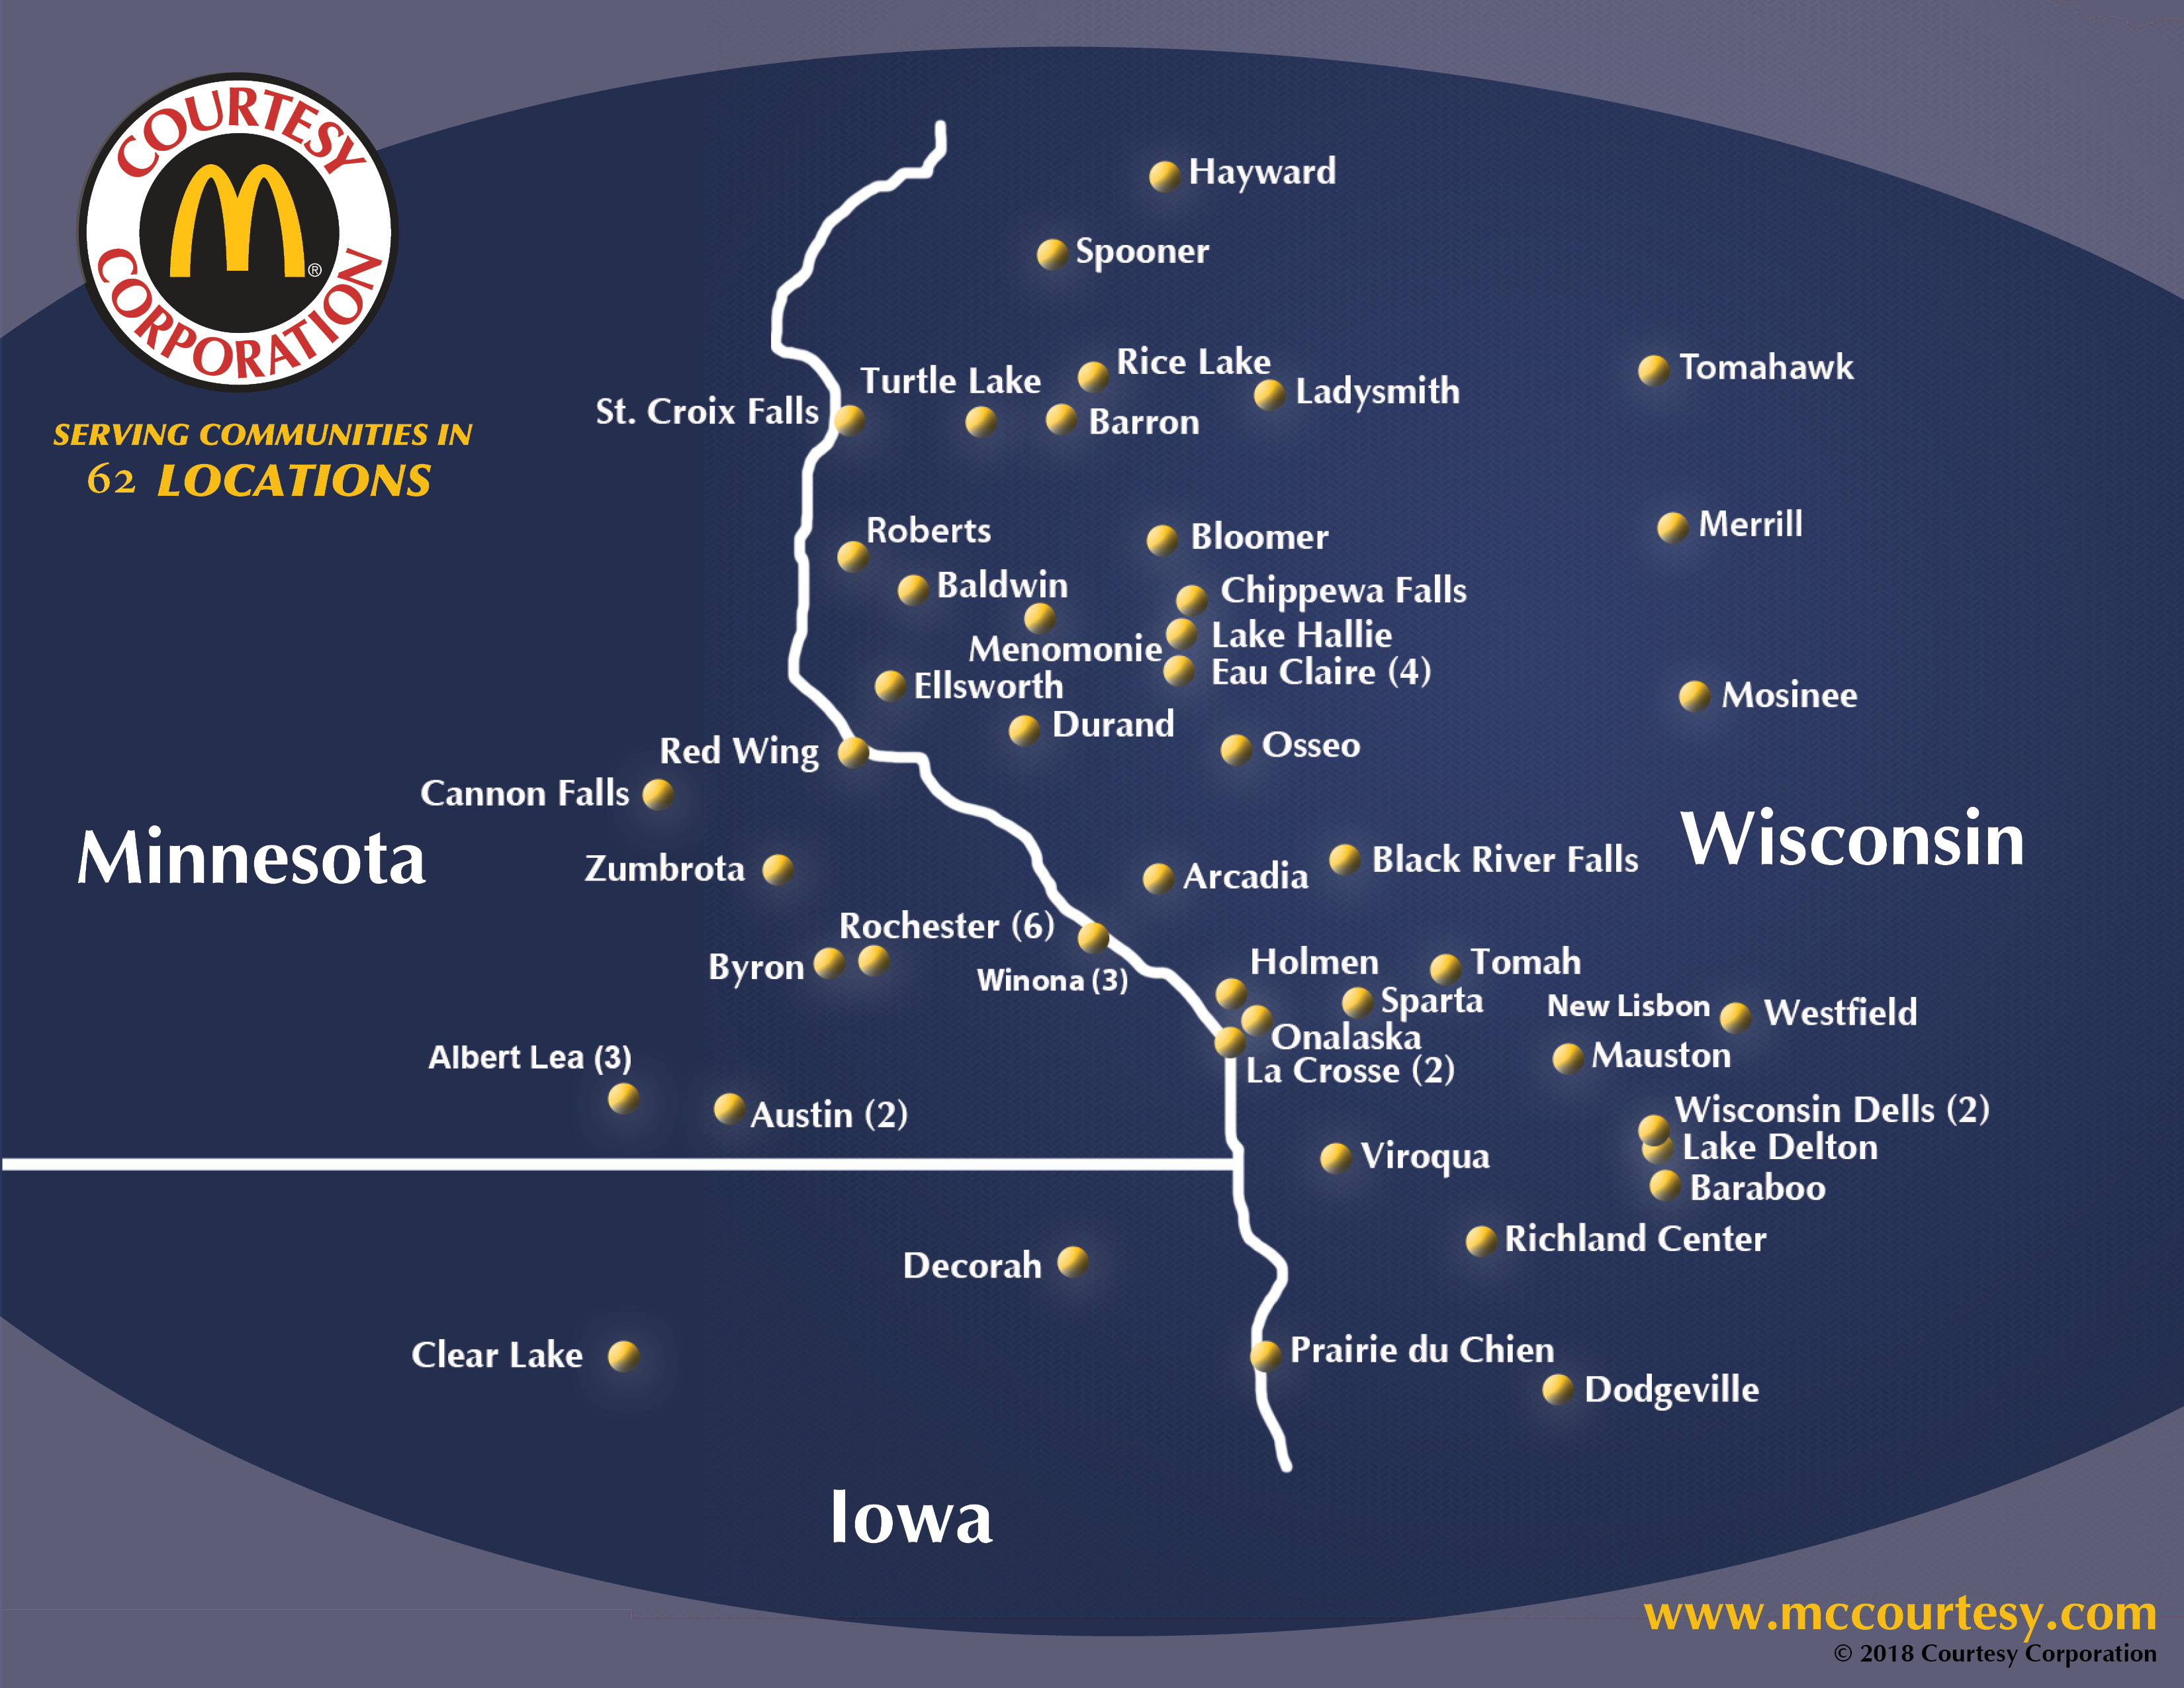 Courtesy Corporation McDonald's Restaurant Locations